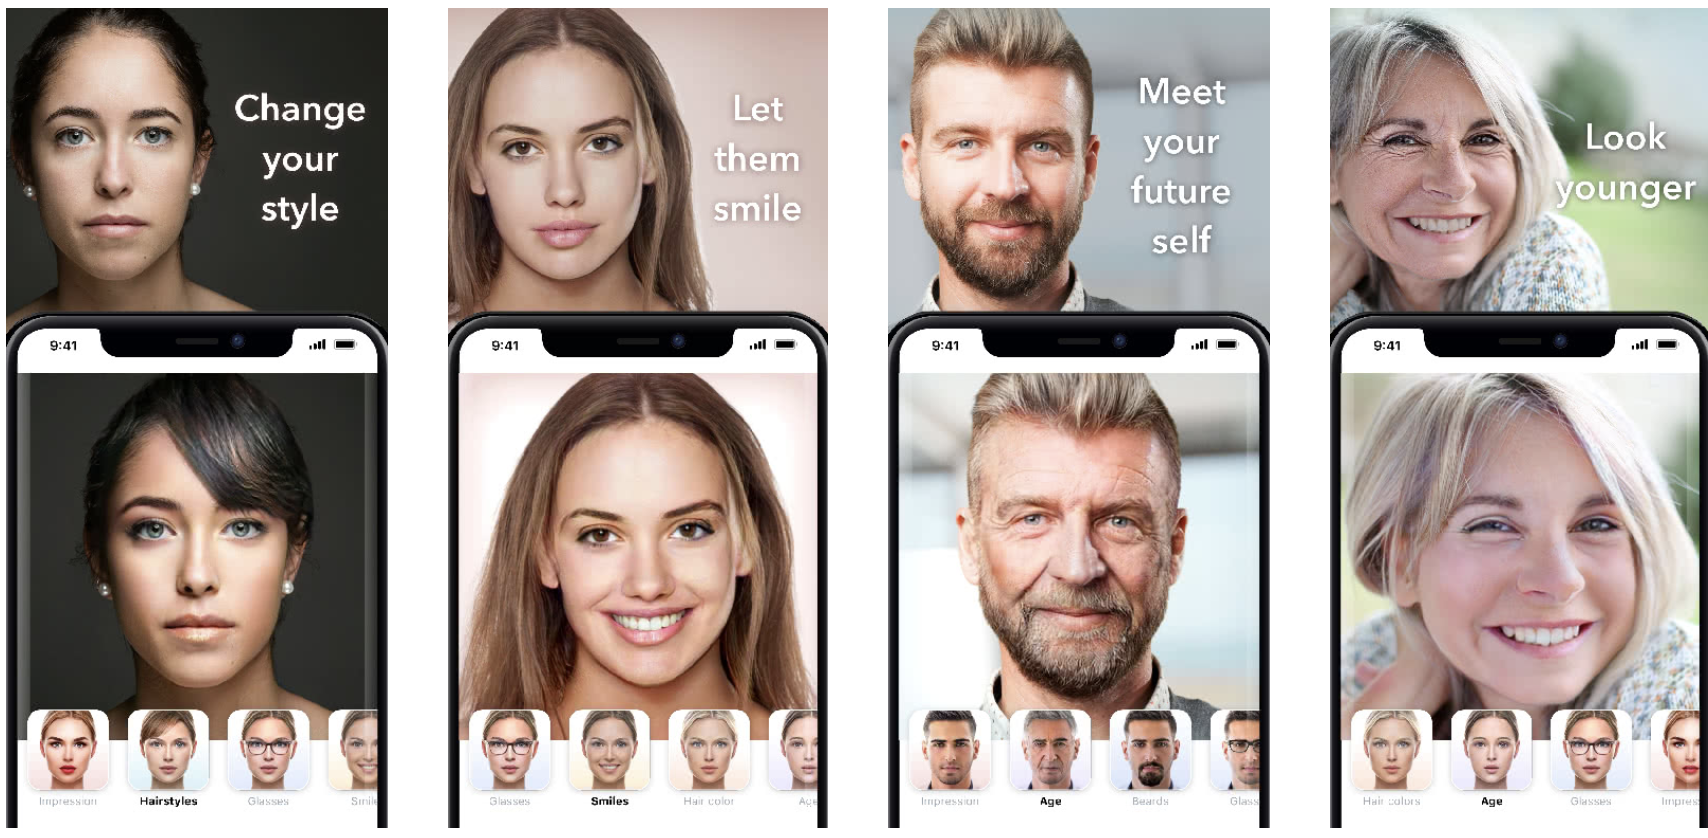 Pictures of people on FaceApp showing them at their current age and older.